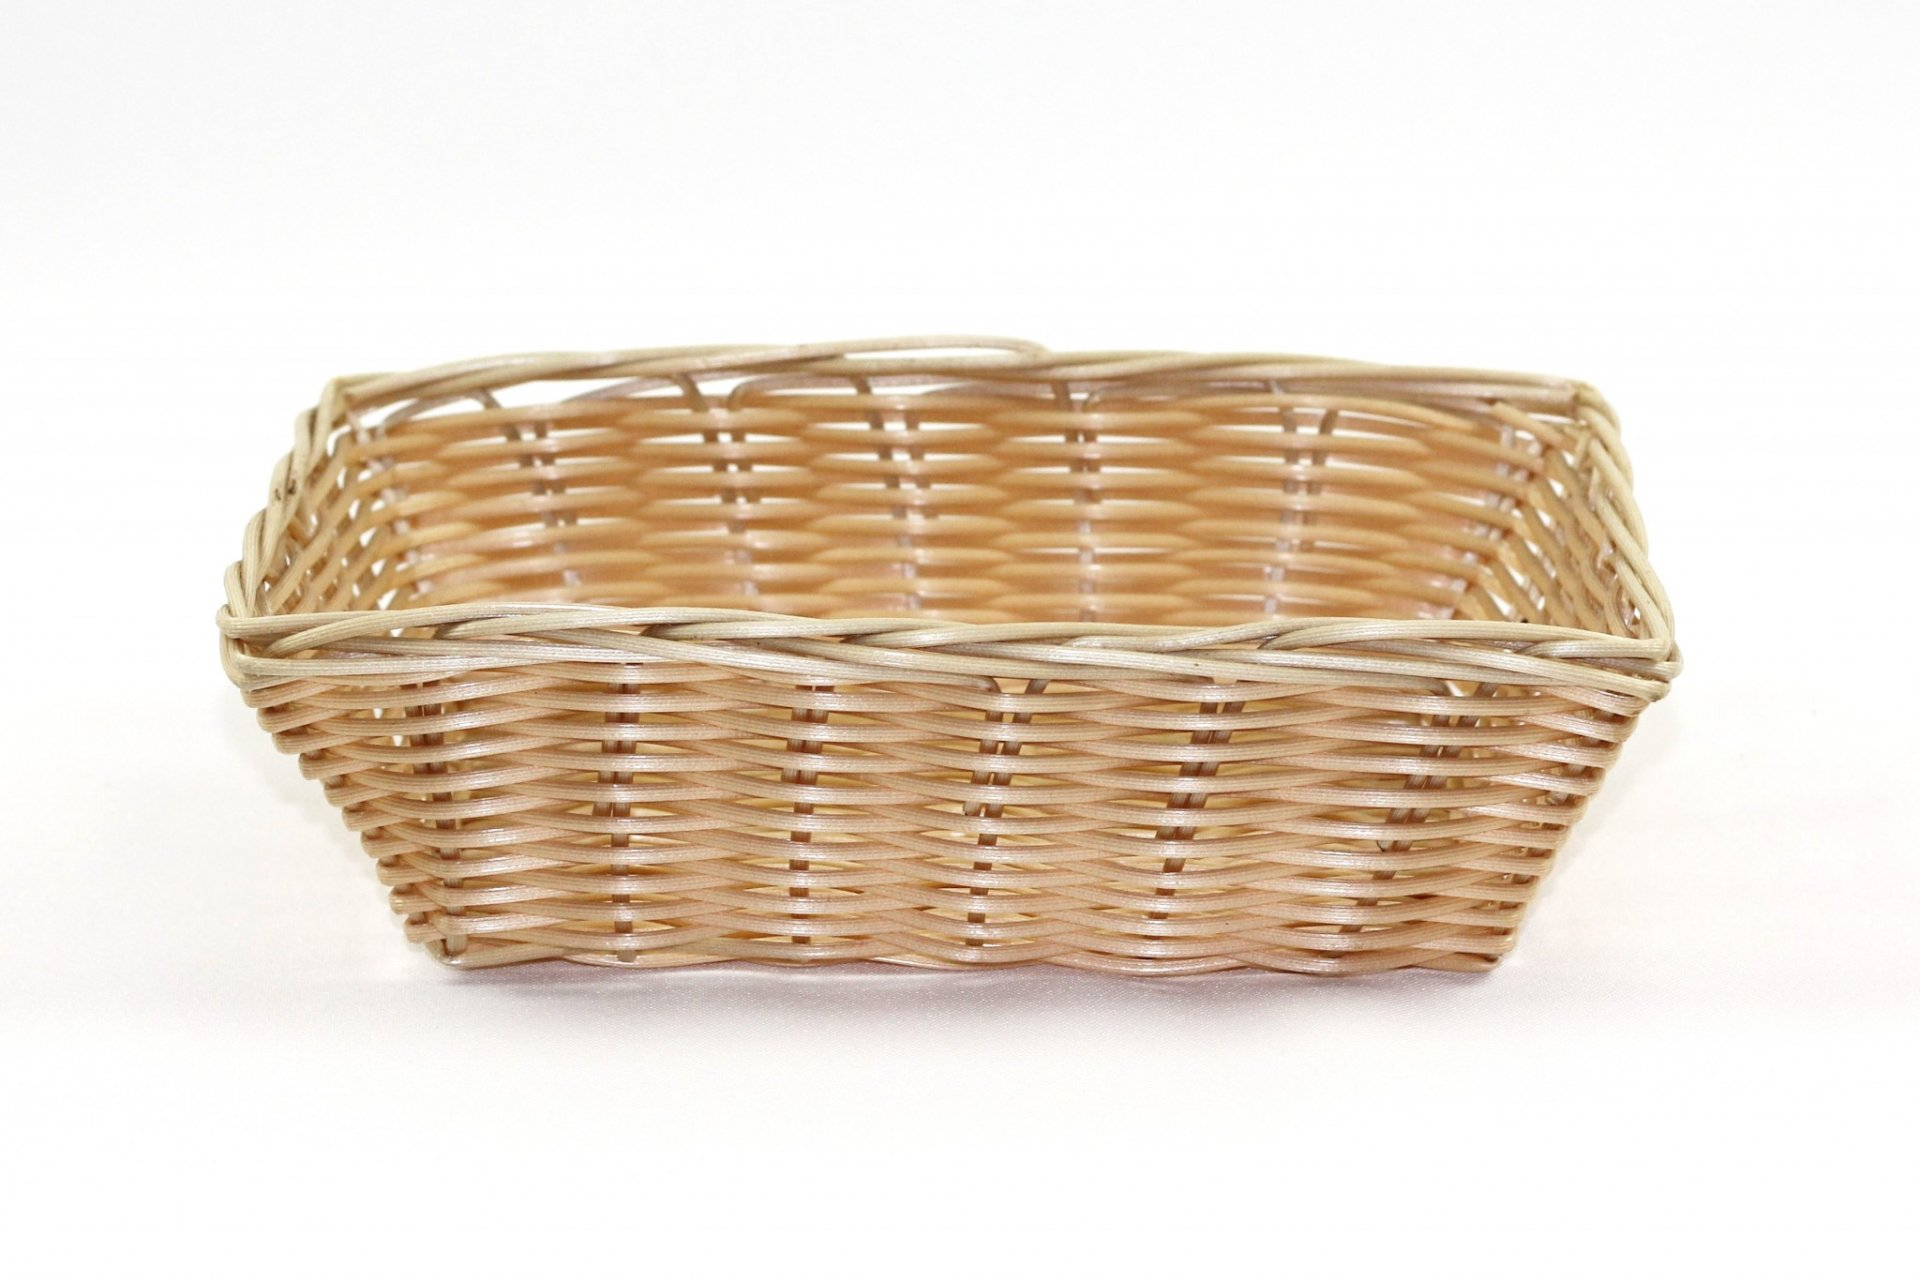 Woven Baskets Bread Basket Wicker Woven United Rent All Omaha